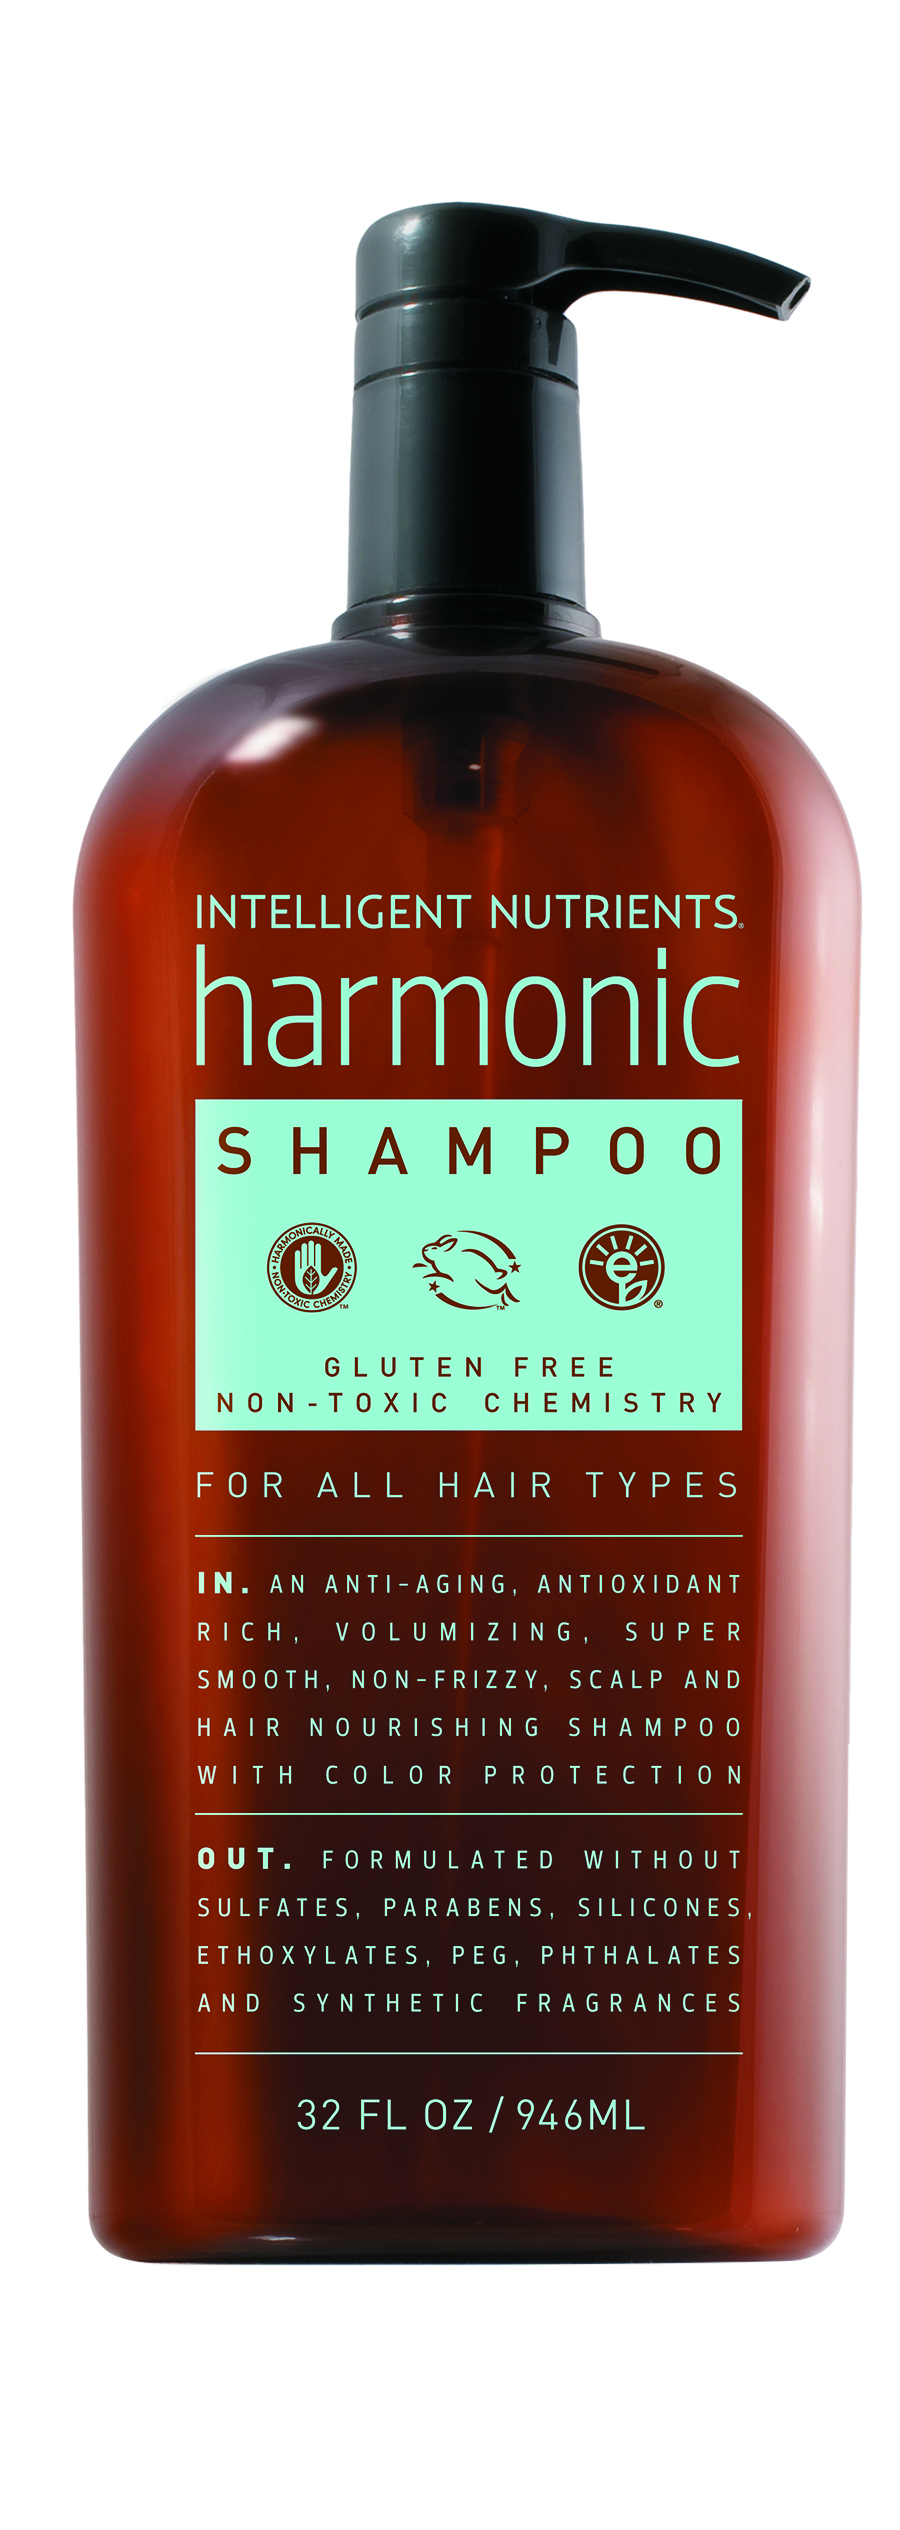 Intelligent Nutrients  Harmonic Shampoo is anti-oxidant rich, anti-aging, volumizing, and nourishing to the scalp, hair and body.